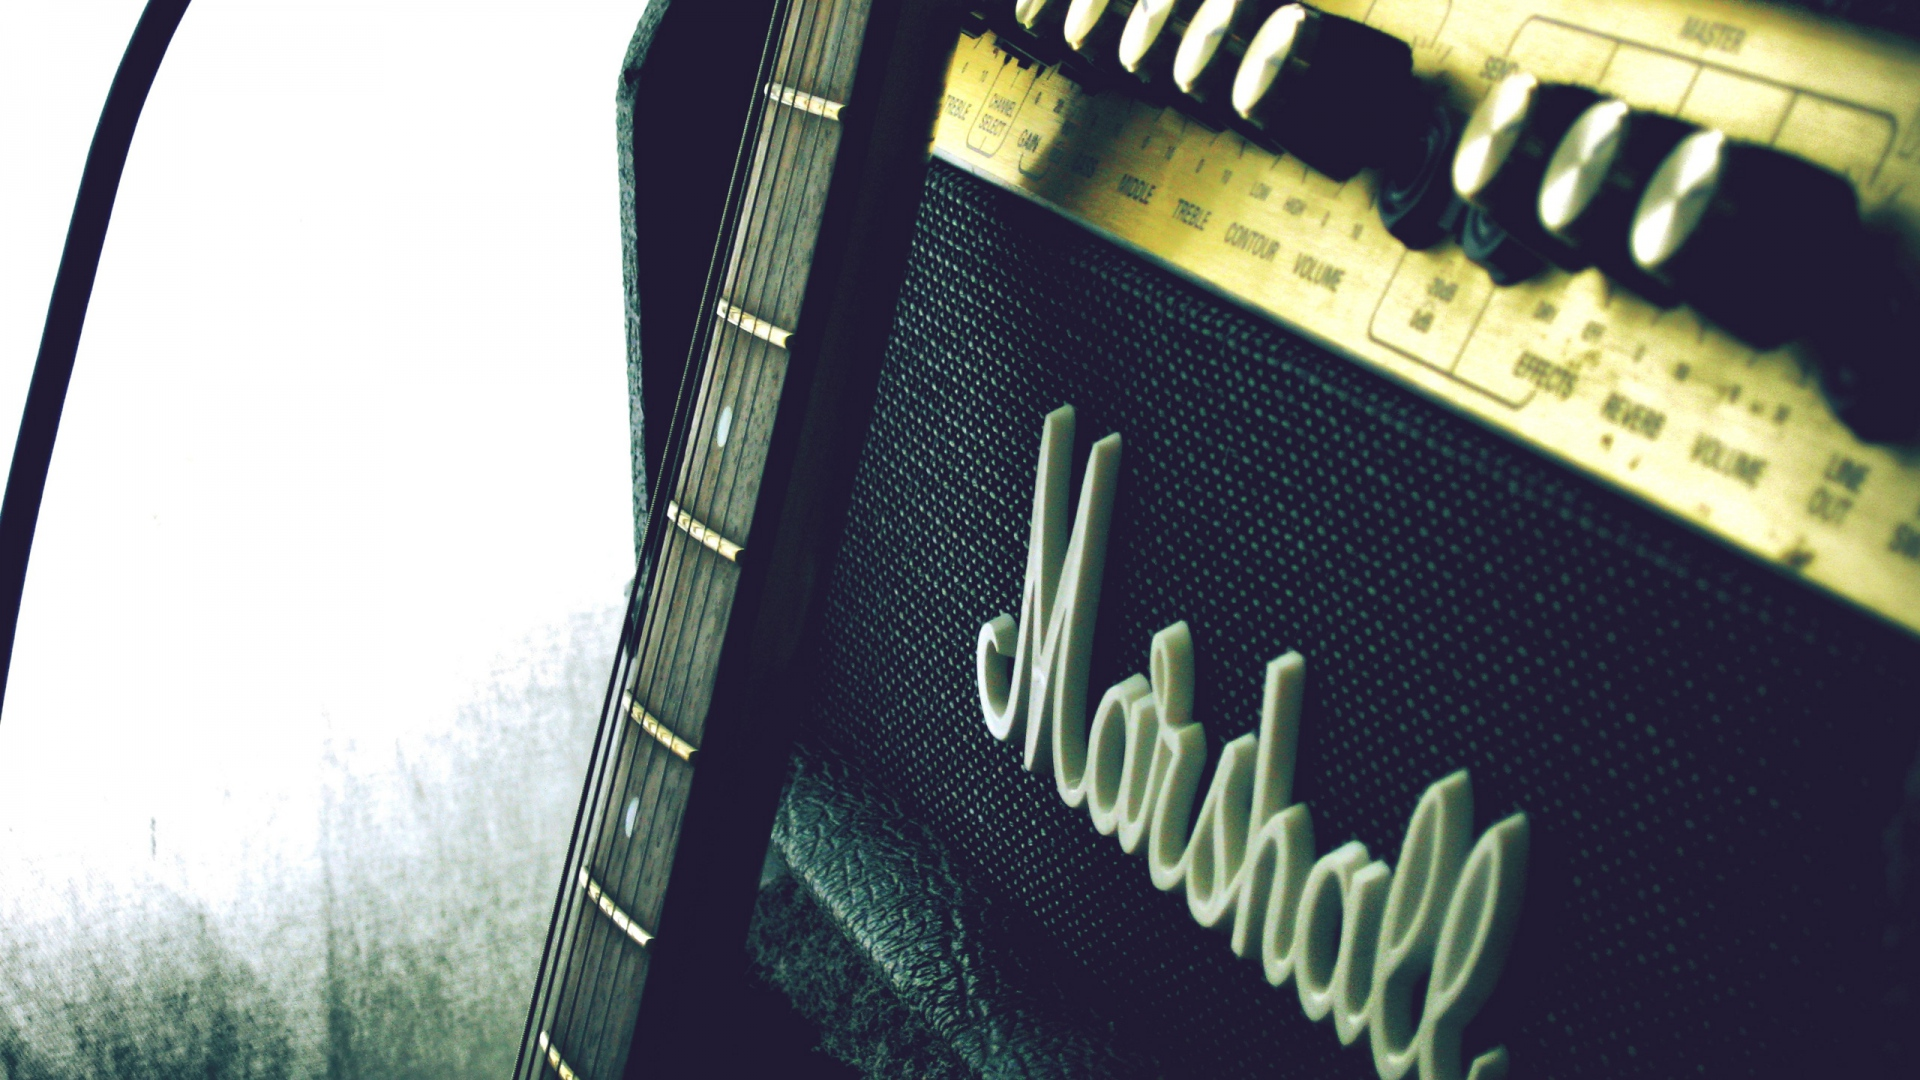 download wallpaper 1920x1080 marshall amp guitar full hd